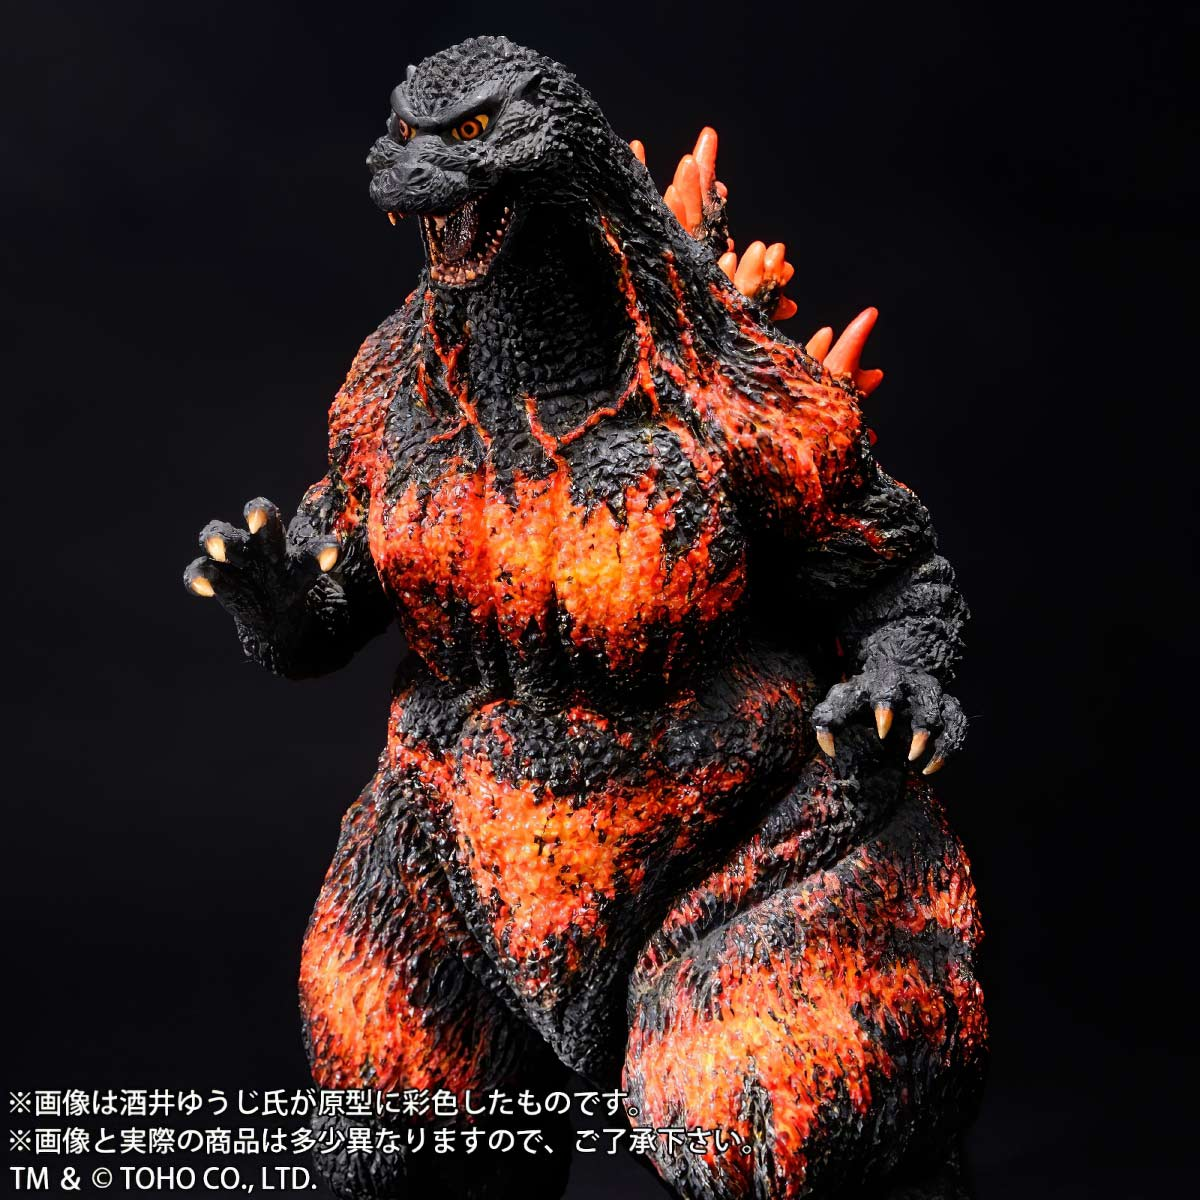 Closer left front view of the 30cm Series Yuji Sakai Modeling Collection Godzilla 1995 Standard vinyl figure by X-Plus.